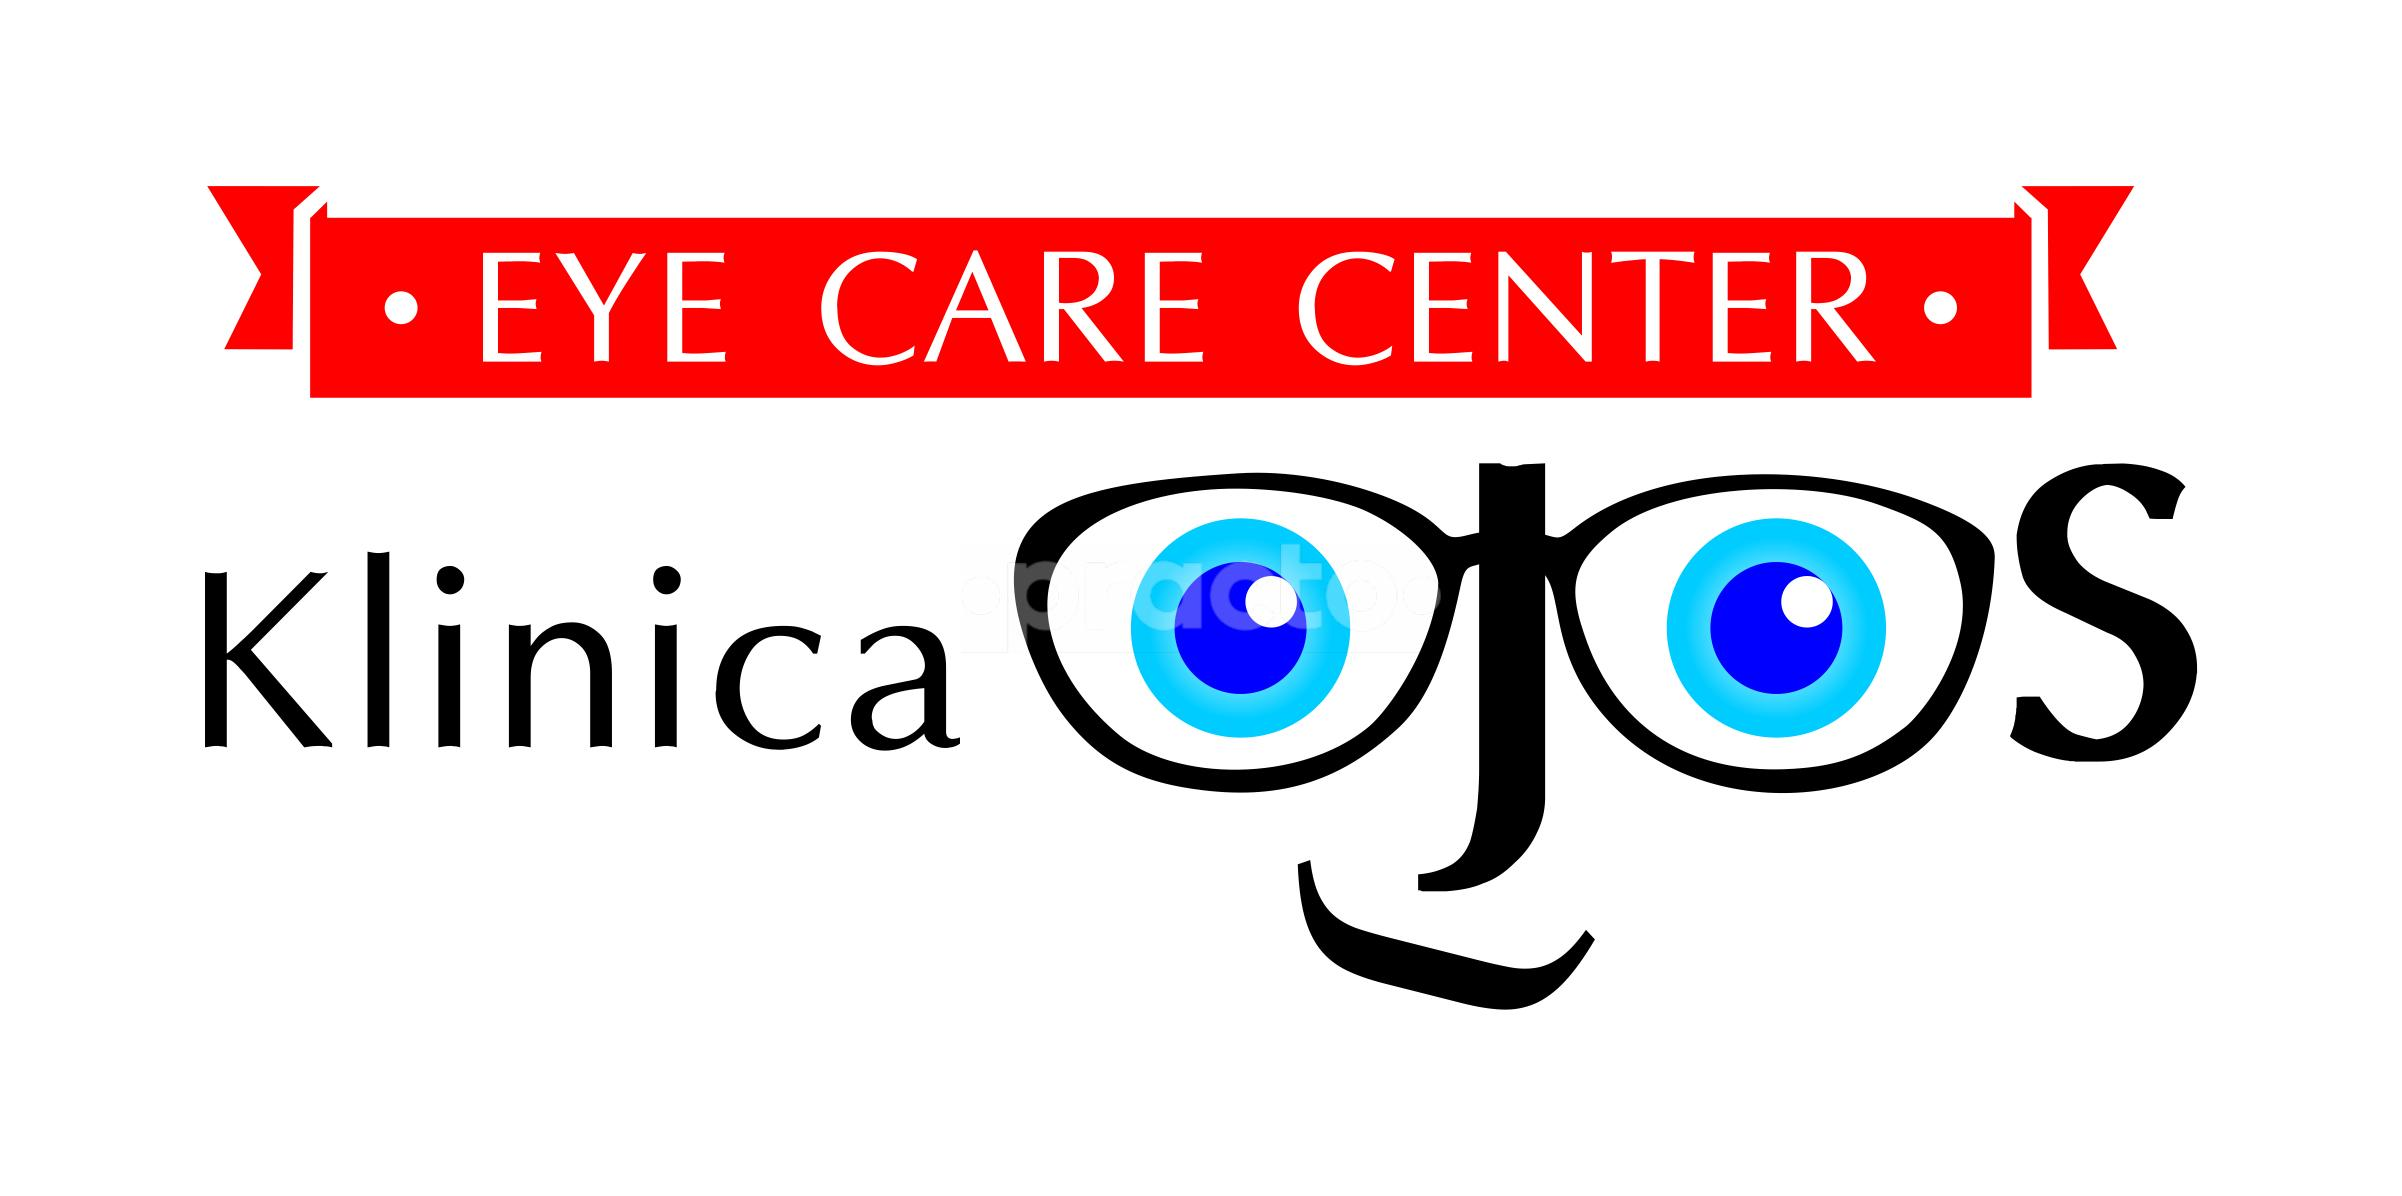 Klinica Ojos  Eye Care Center